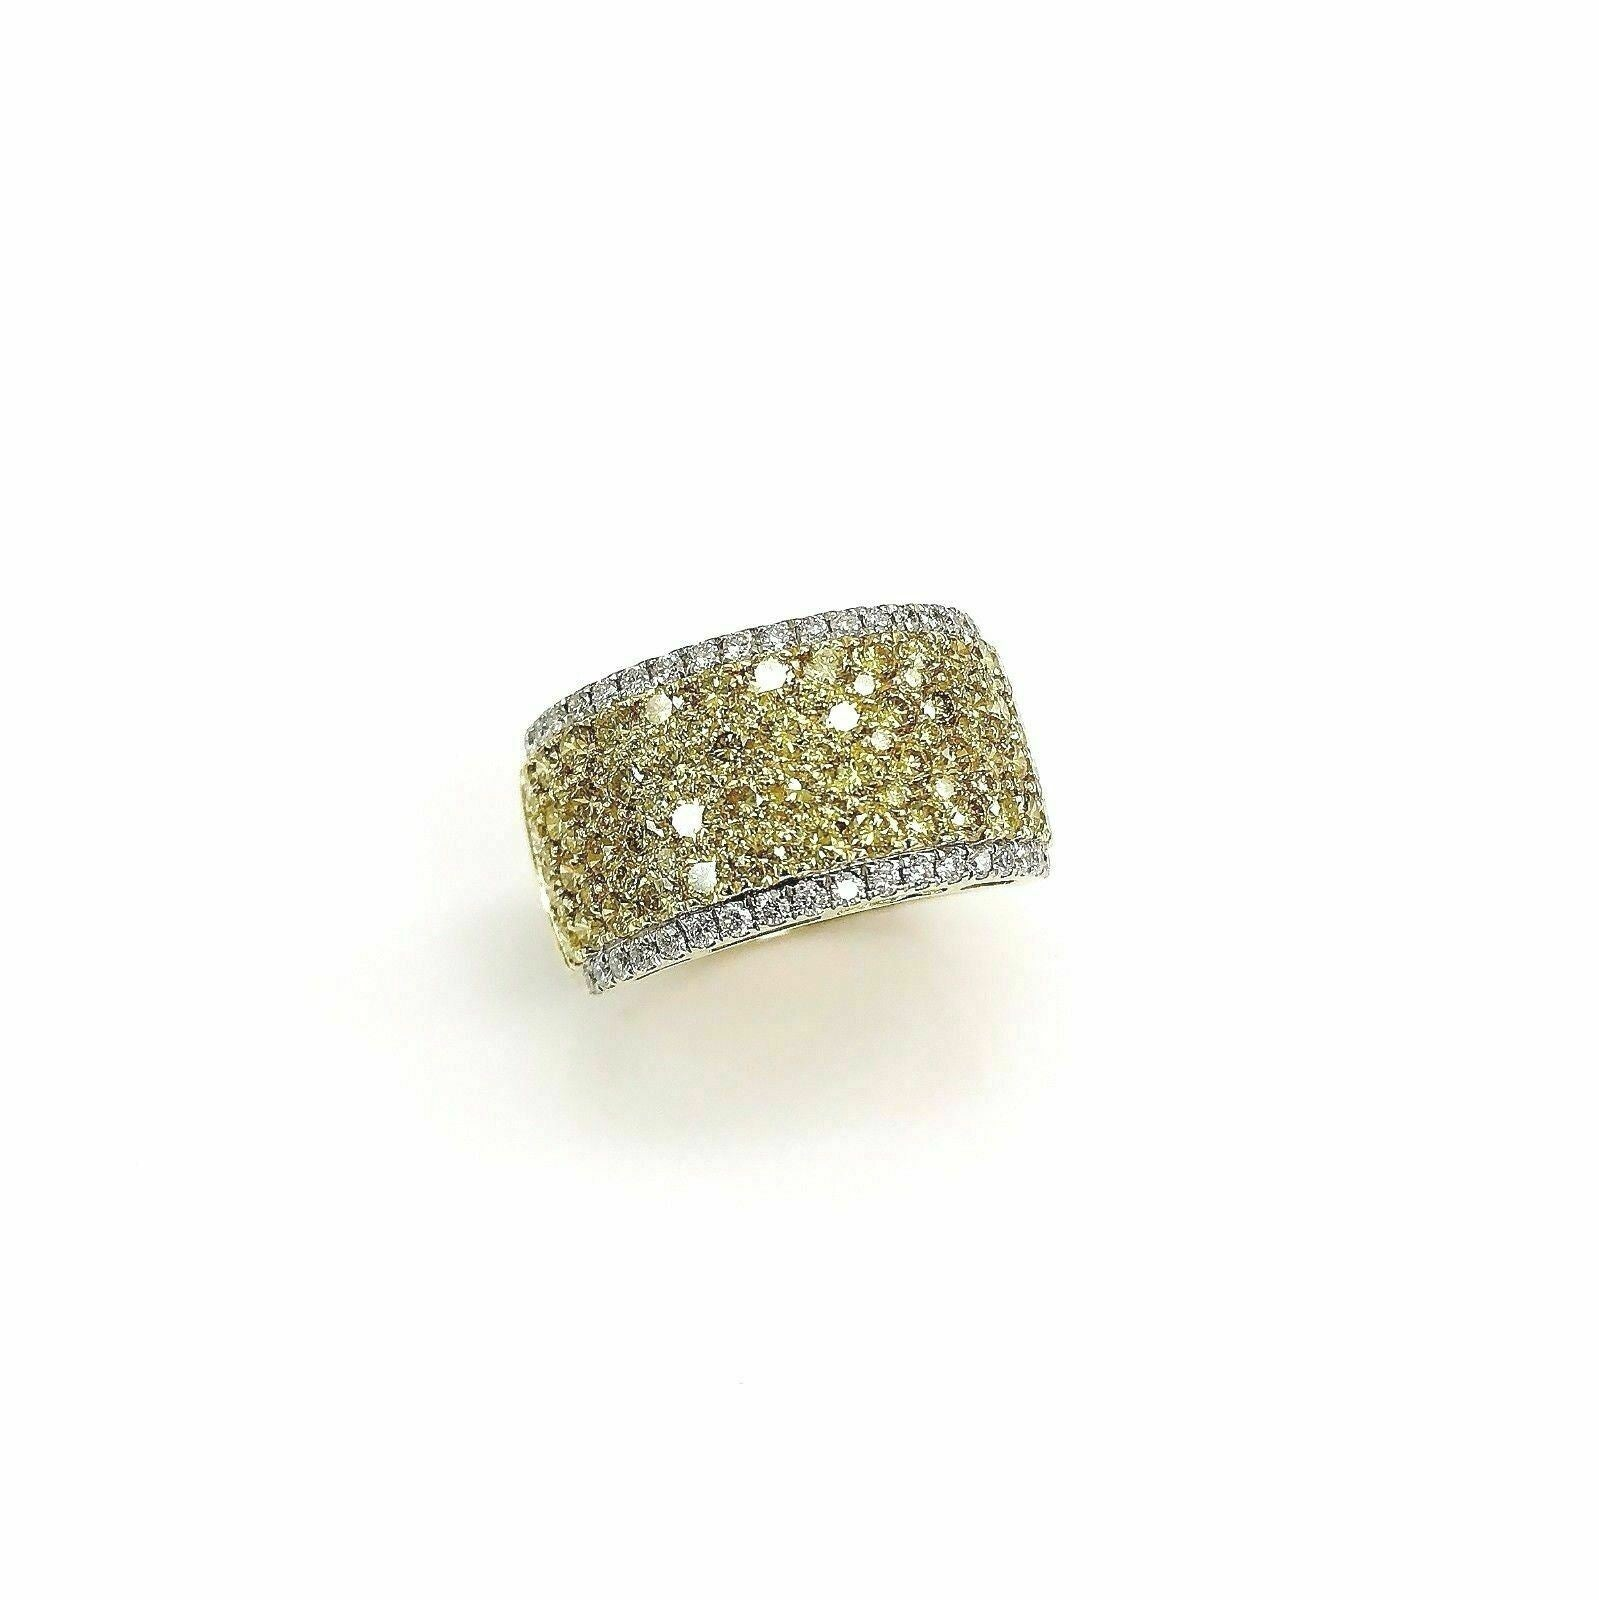 2.15 Carats t.w. Fancy Yellow and White Diamond Anniversary Ring 18 Karat Gold